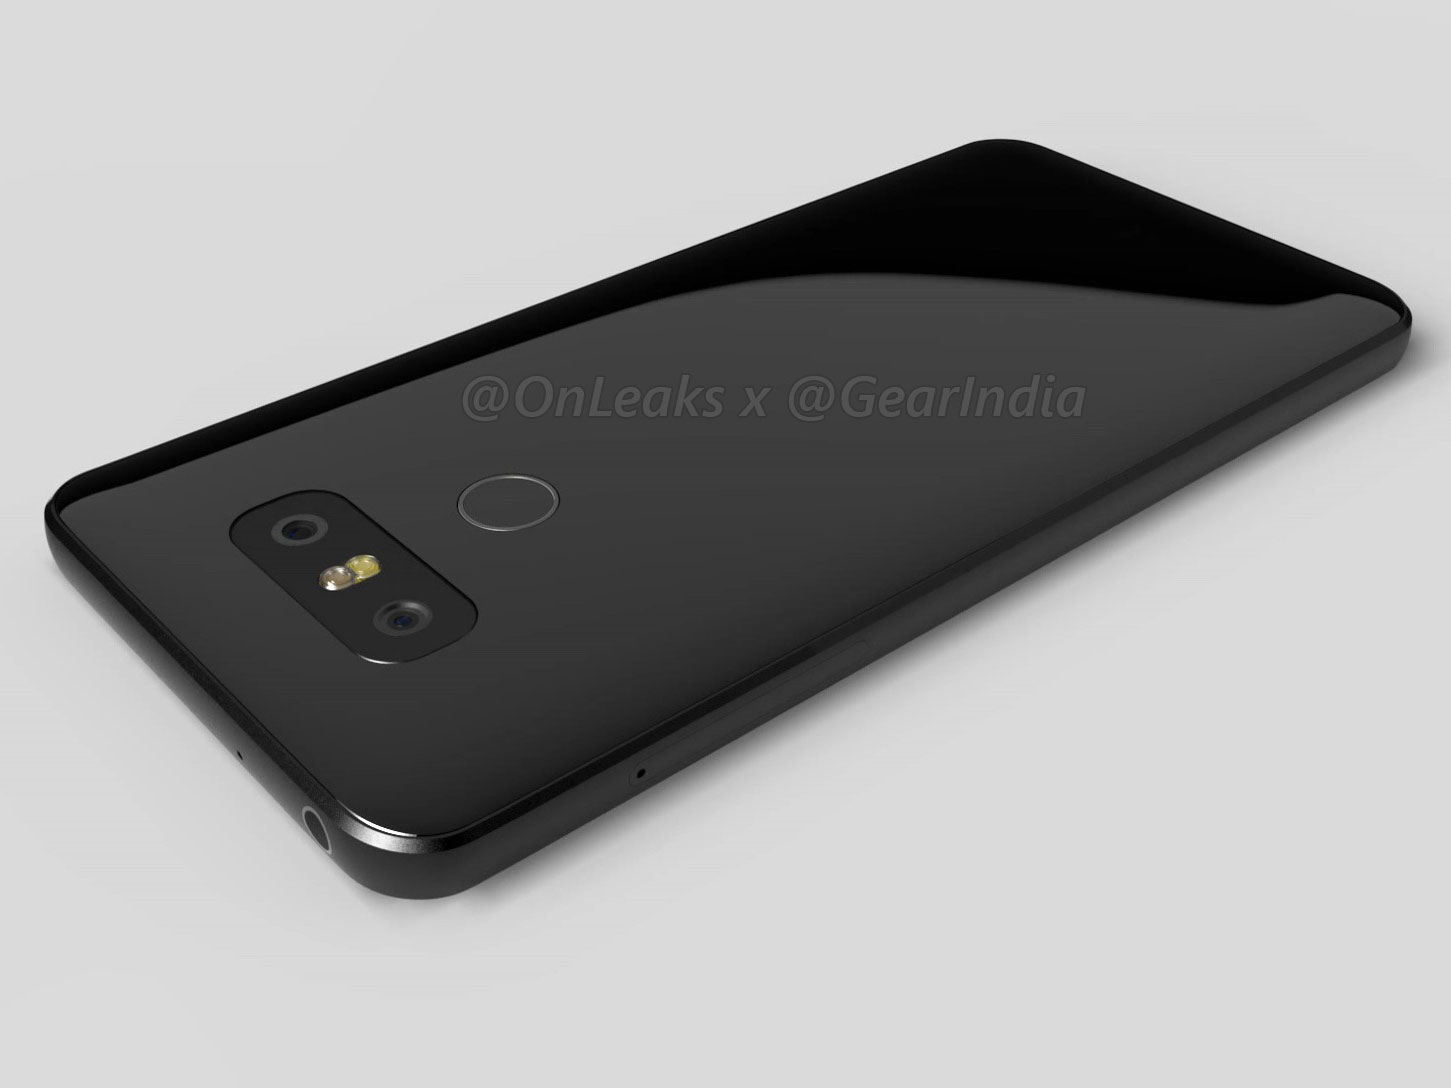 Rendered images show upcoming LG G6 with dual-cam: Digital